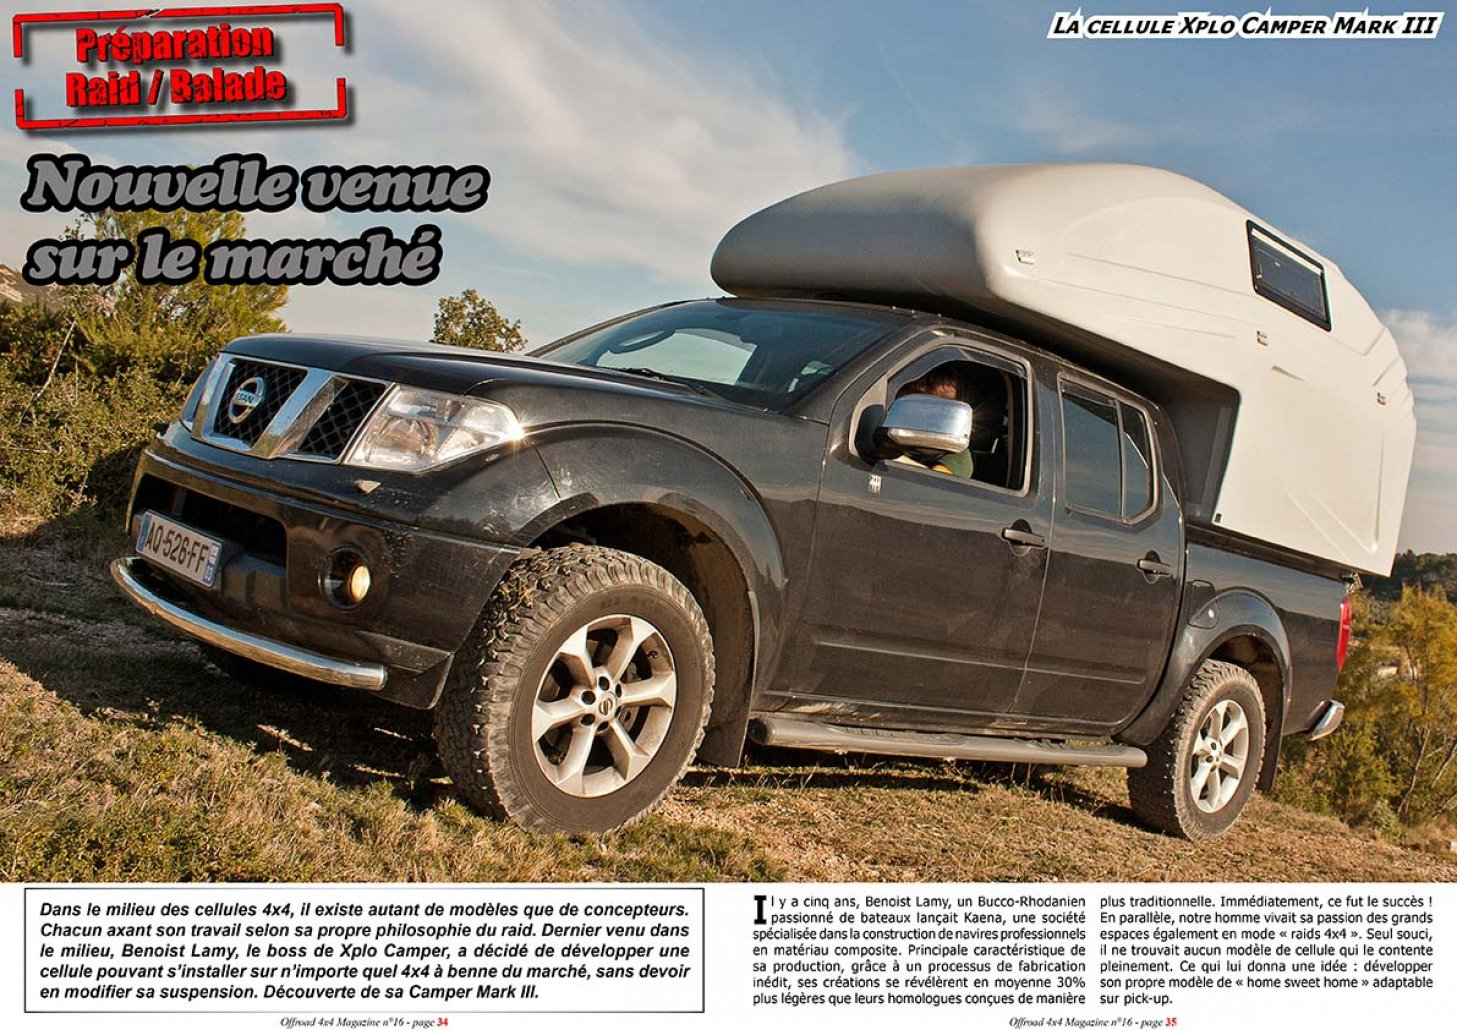 La cellule Xplo Camper Mark III